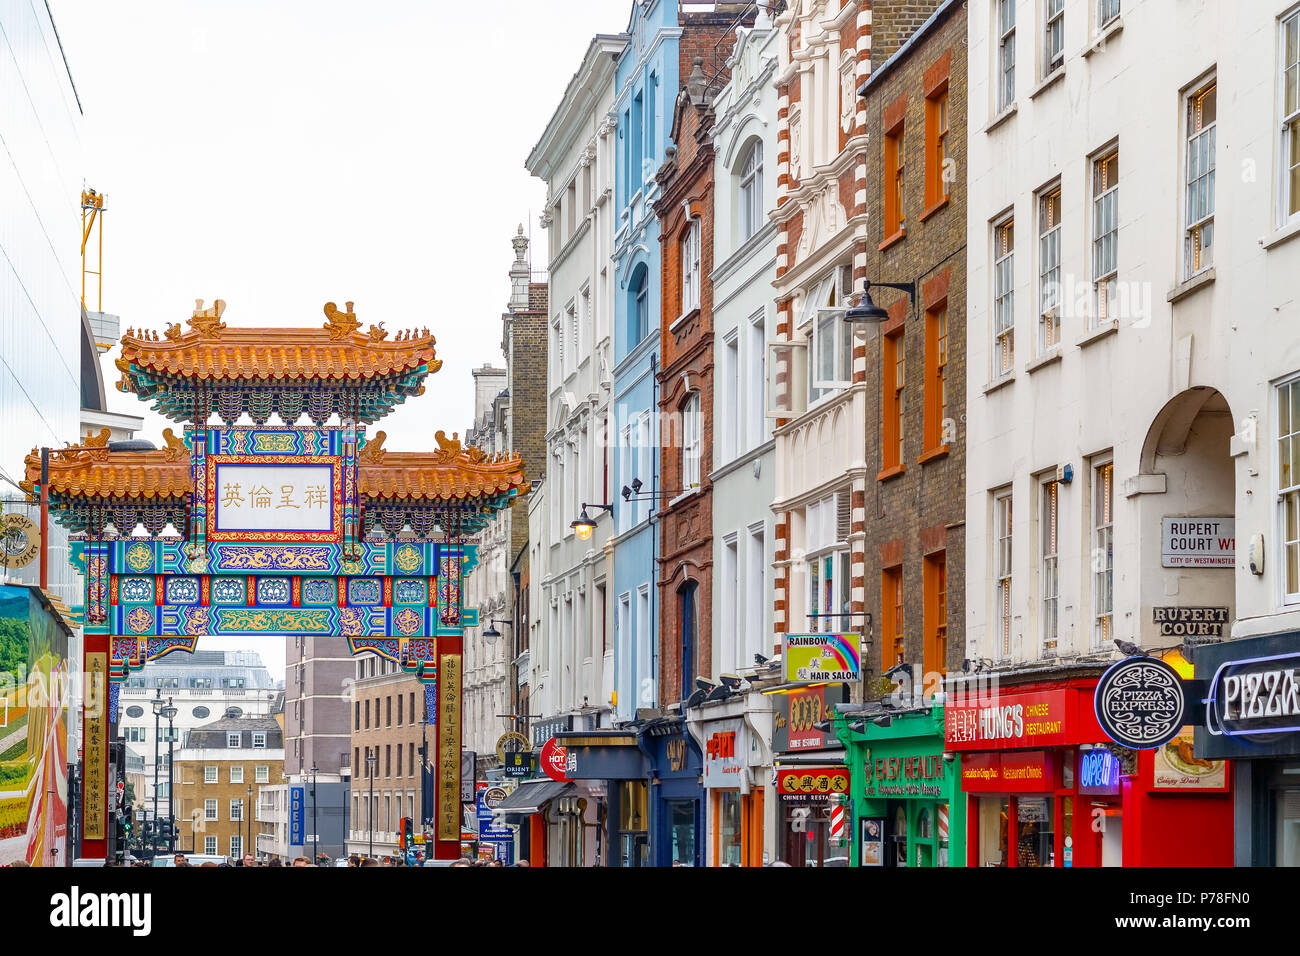 London, UK - June 22, 2018 - London Chinatown features Chinese restaurants, bakeries and souvenir shops in Soho area Stock Photo